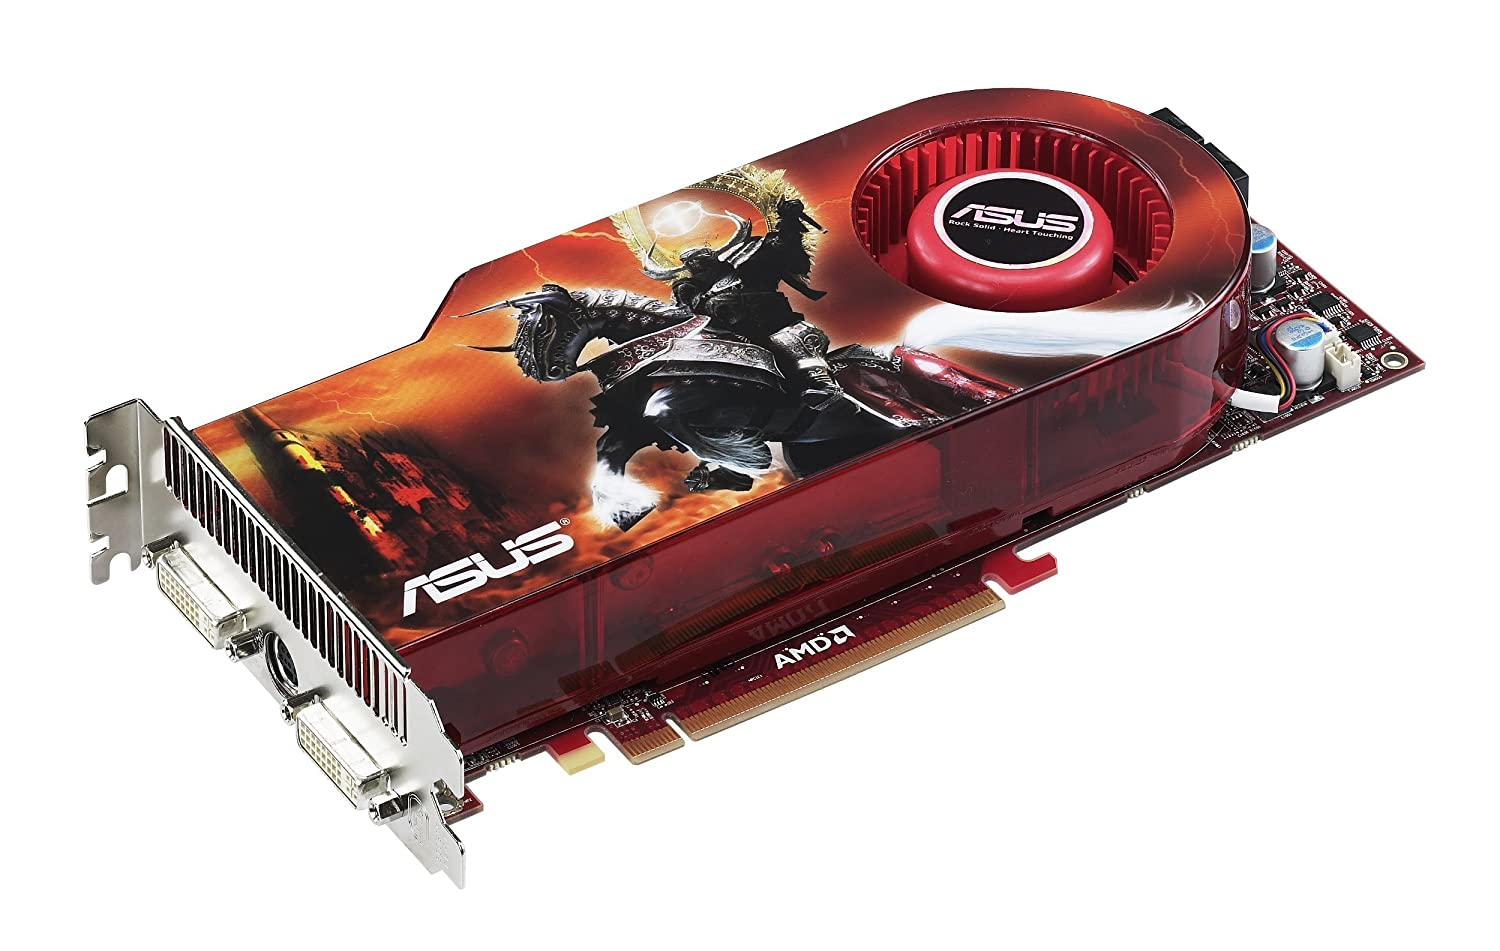 ASUS EAH4890 DRIVER FOR WINDOWS 10